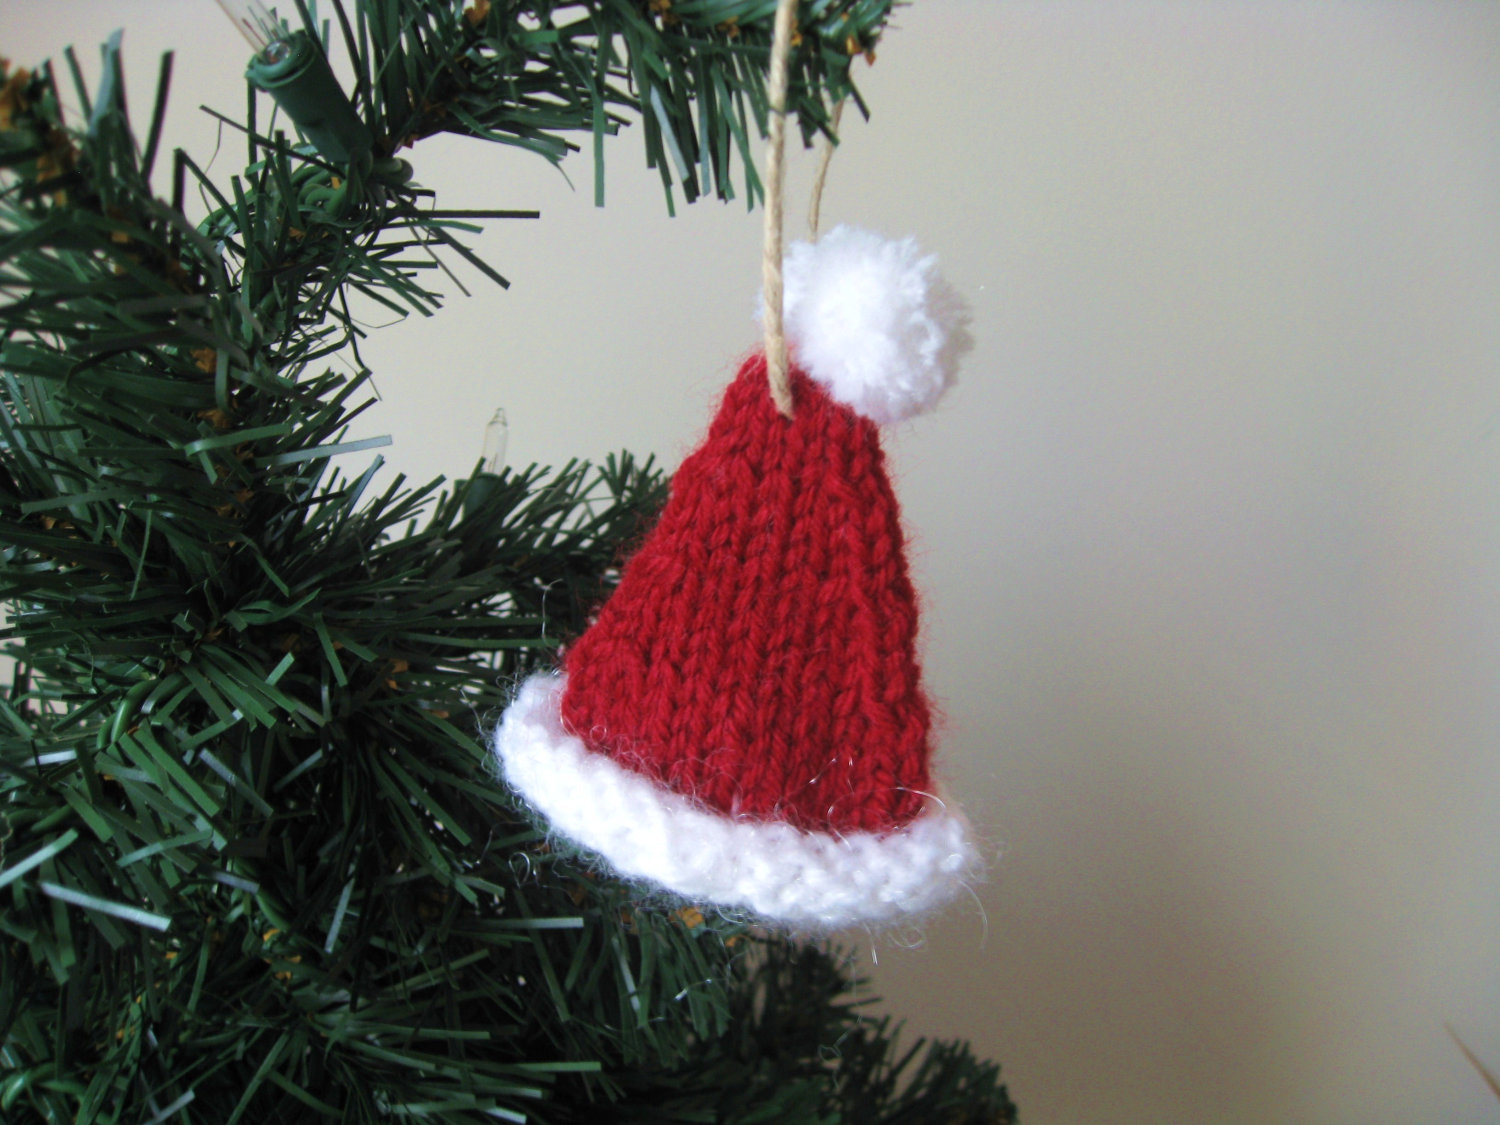 Knitted Xmas Tree Decorations Patterns : Family Crafts and Recipes: Knitted Christmas Ornaments- Free Pattern Included